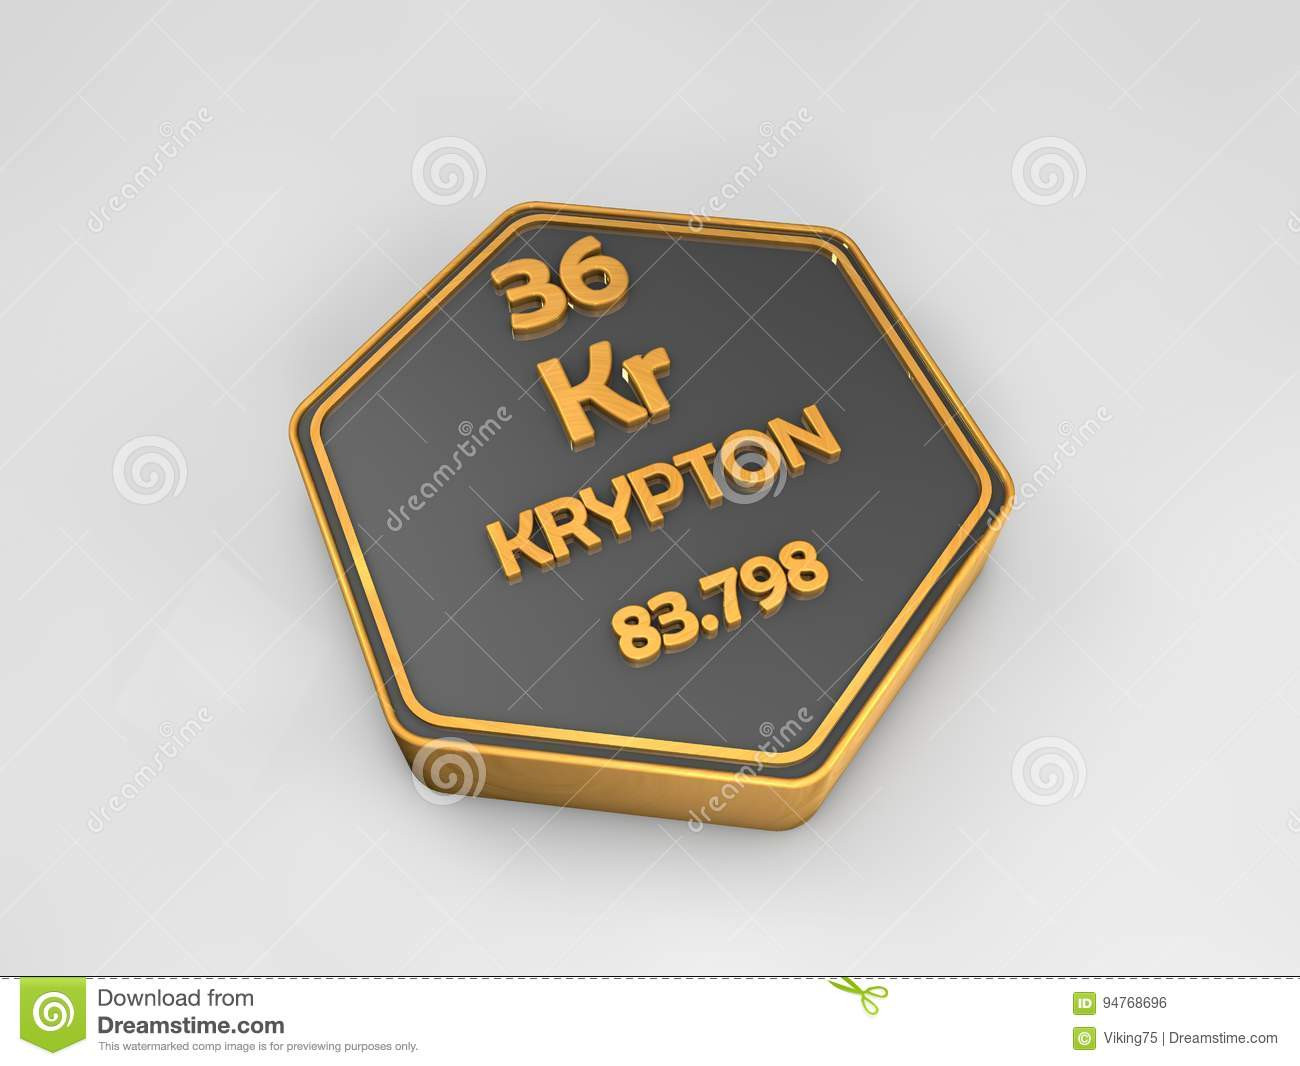 Kr periodic table image collections periodic table images krypton kr chemical element periodic table hexagonal shape krypton kr chemical element periodic table hexagonal shape gamestrikefo Image collections